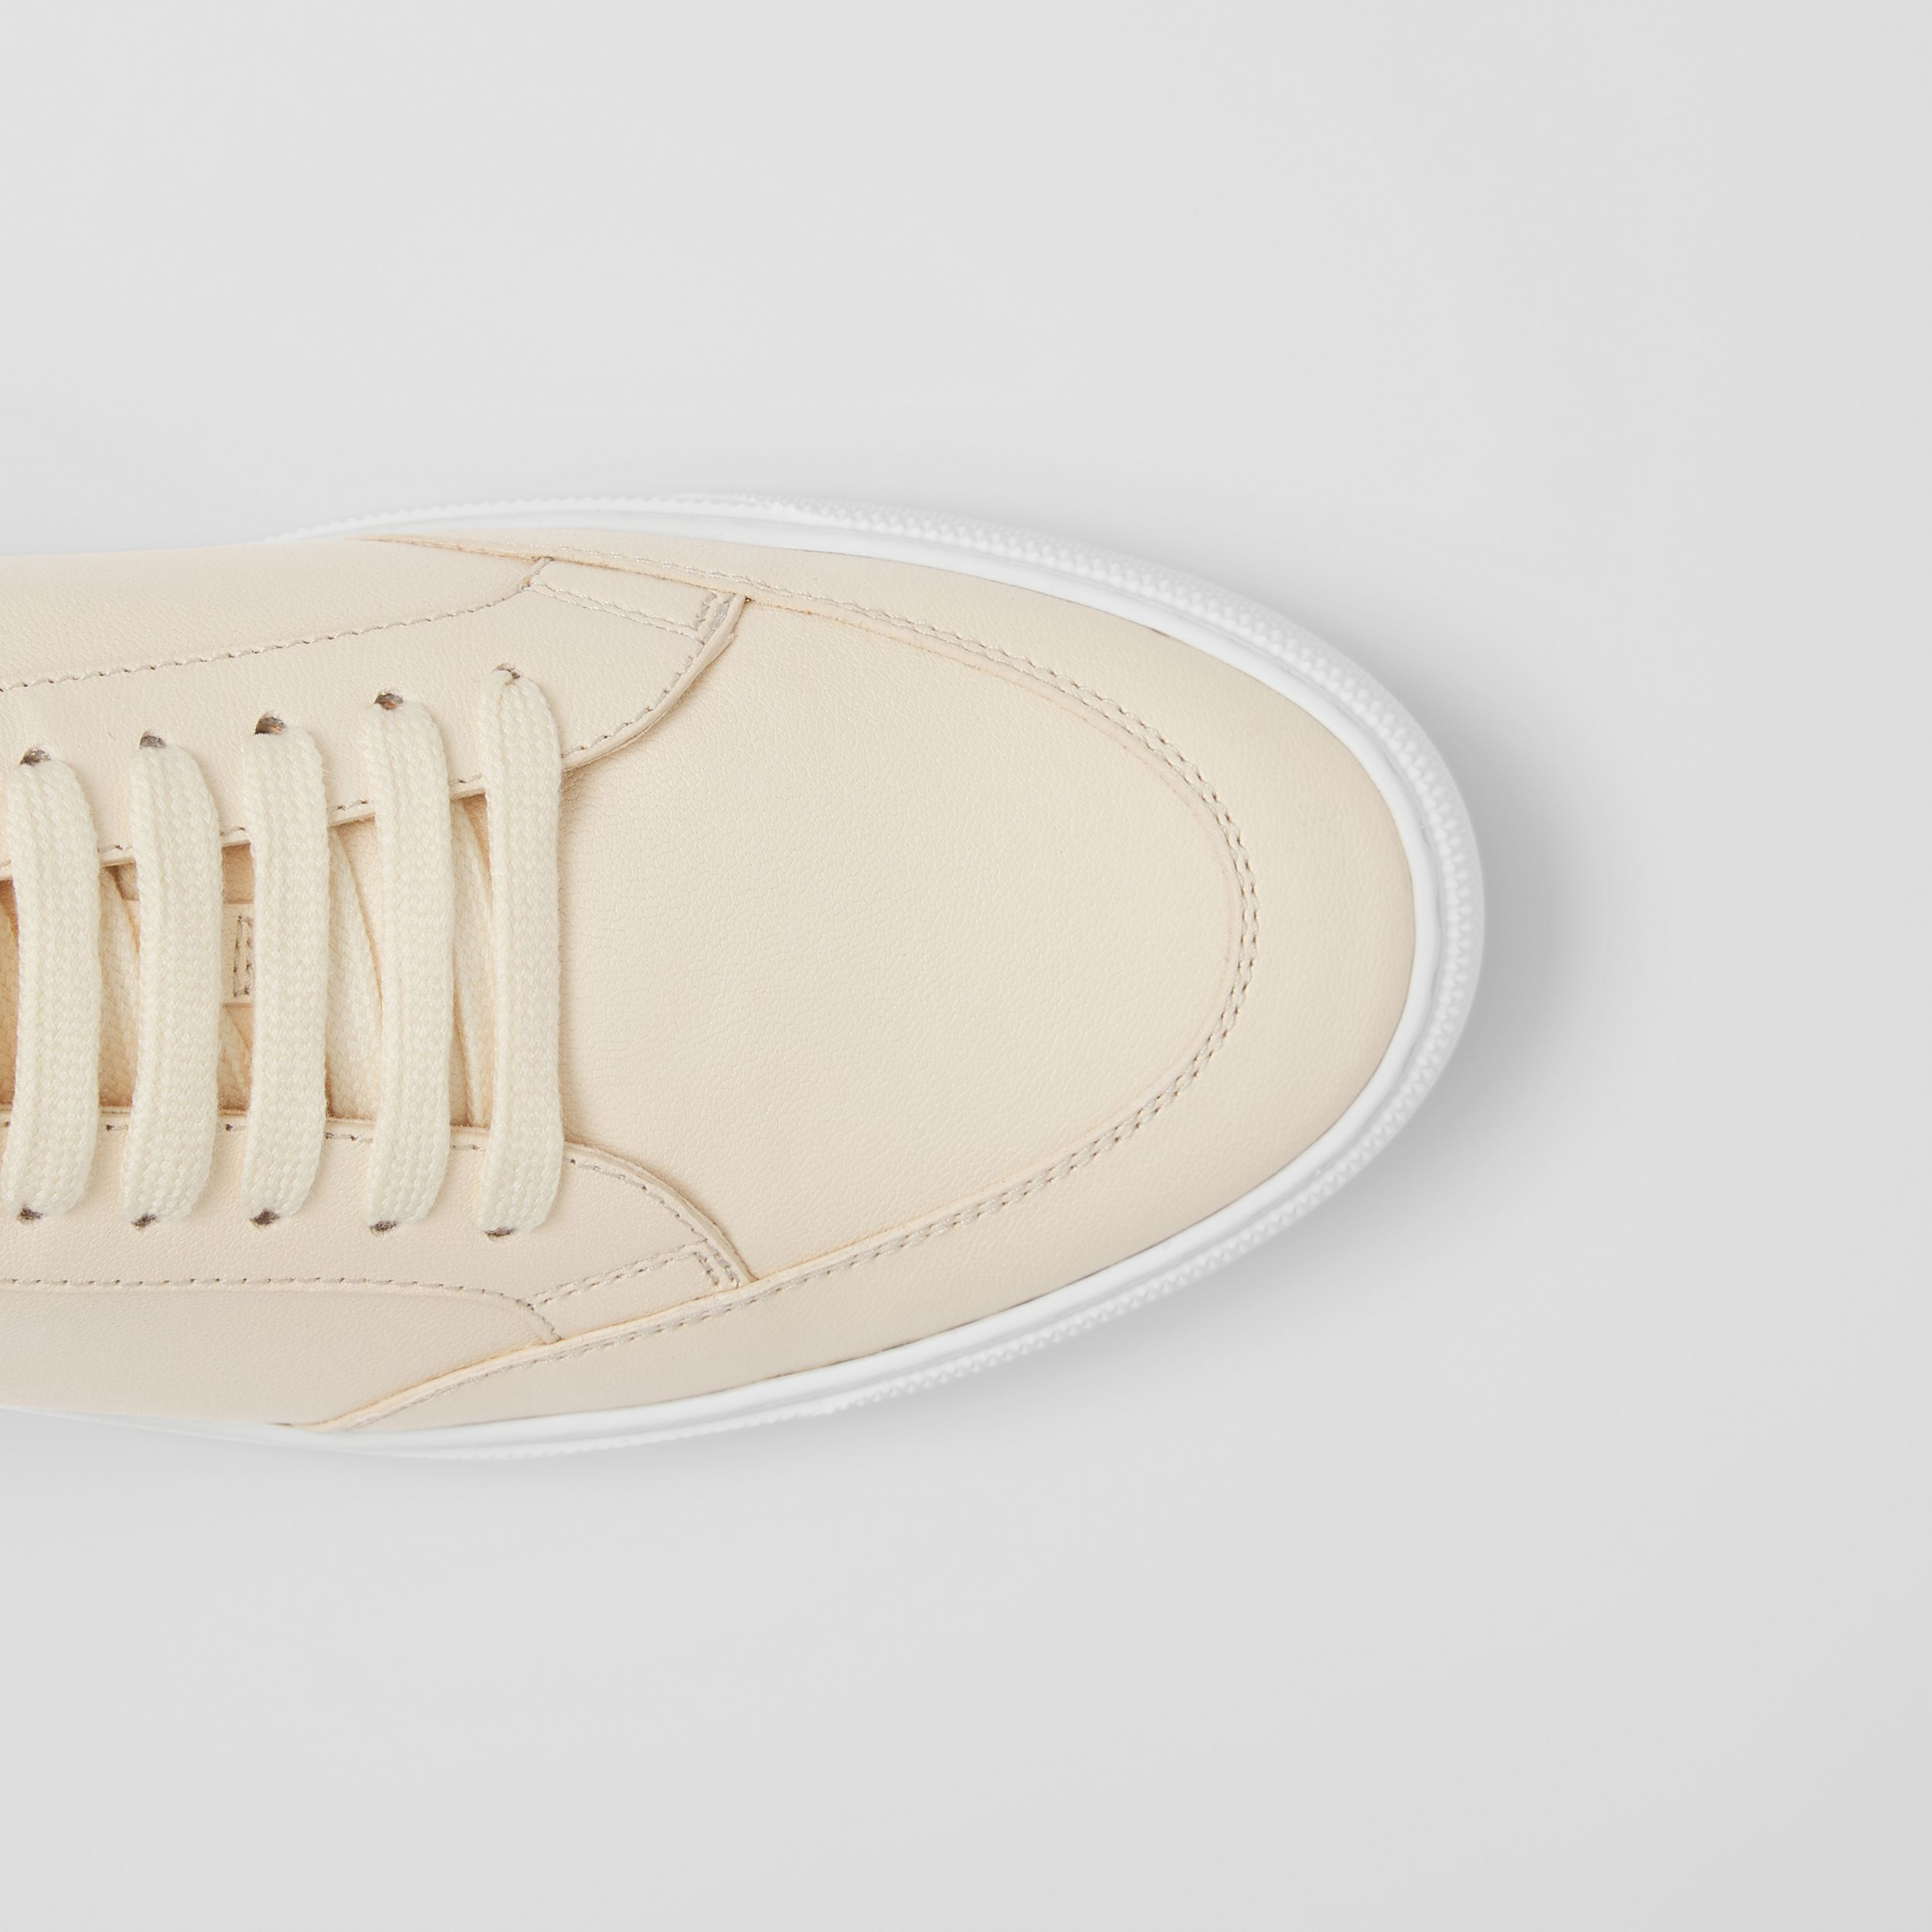 Logo Detail Lambskin Sneakers in Pale Biscuit - Women | Burberry Singapore - 2